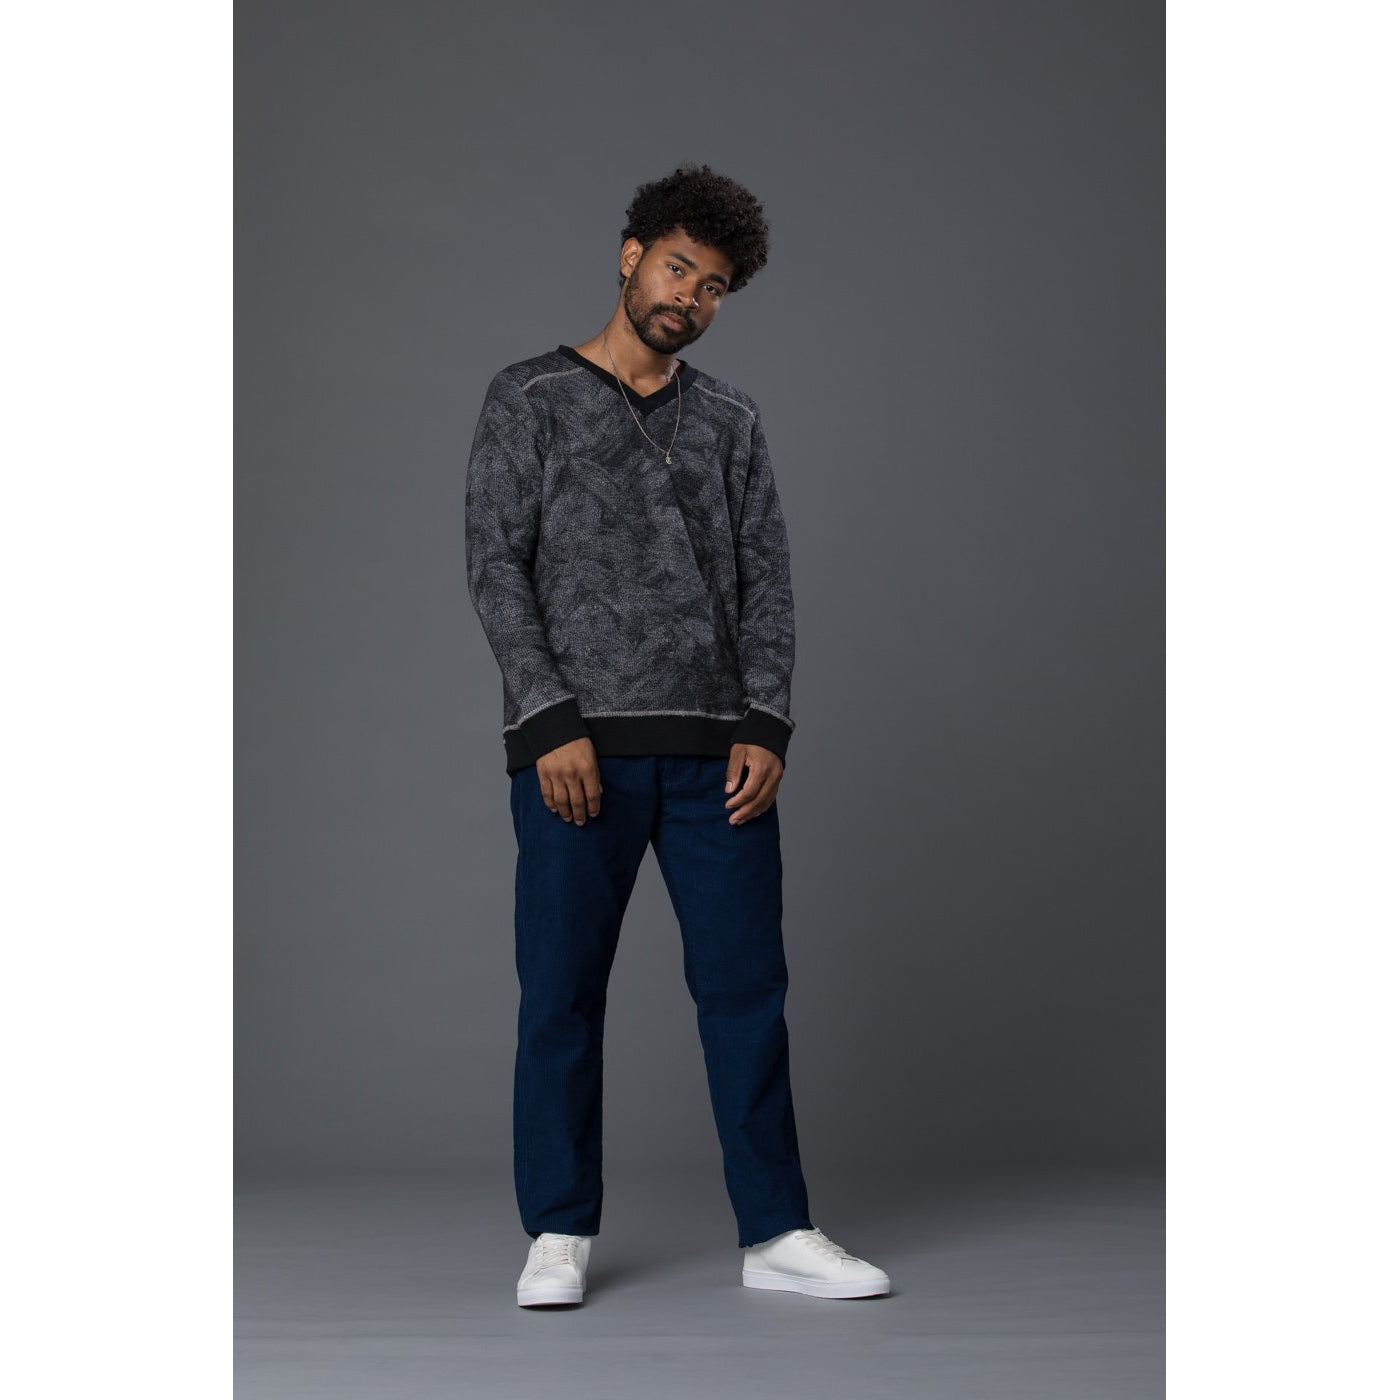 Thaddeus O'Neil Textured Navy Pullover Sweater